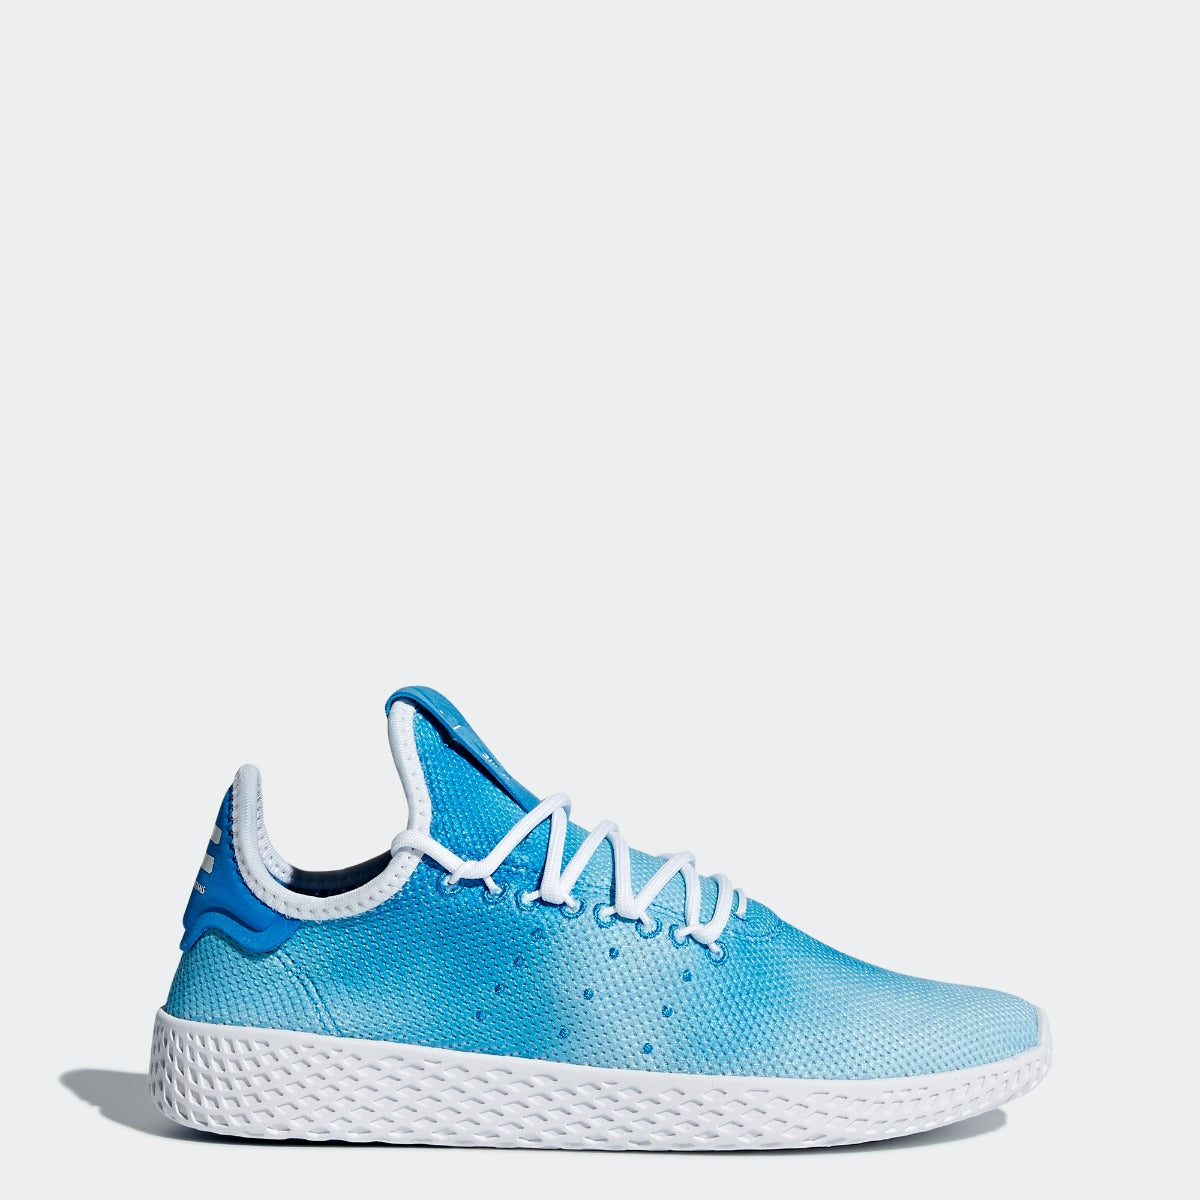 fb1ef5be4 Kid s adidas Originals Pharrell Williams Tennis Hu Shoes Bright Blue with Cloud  White. 1